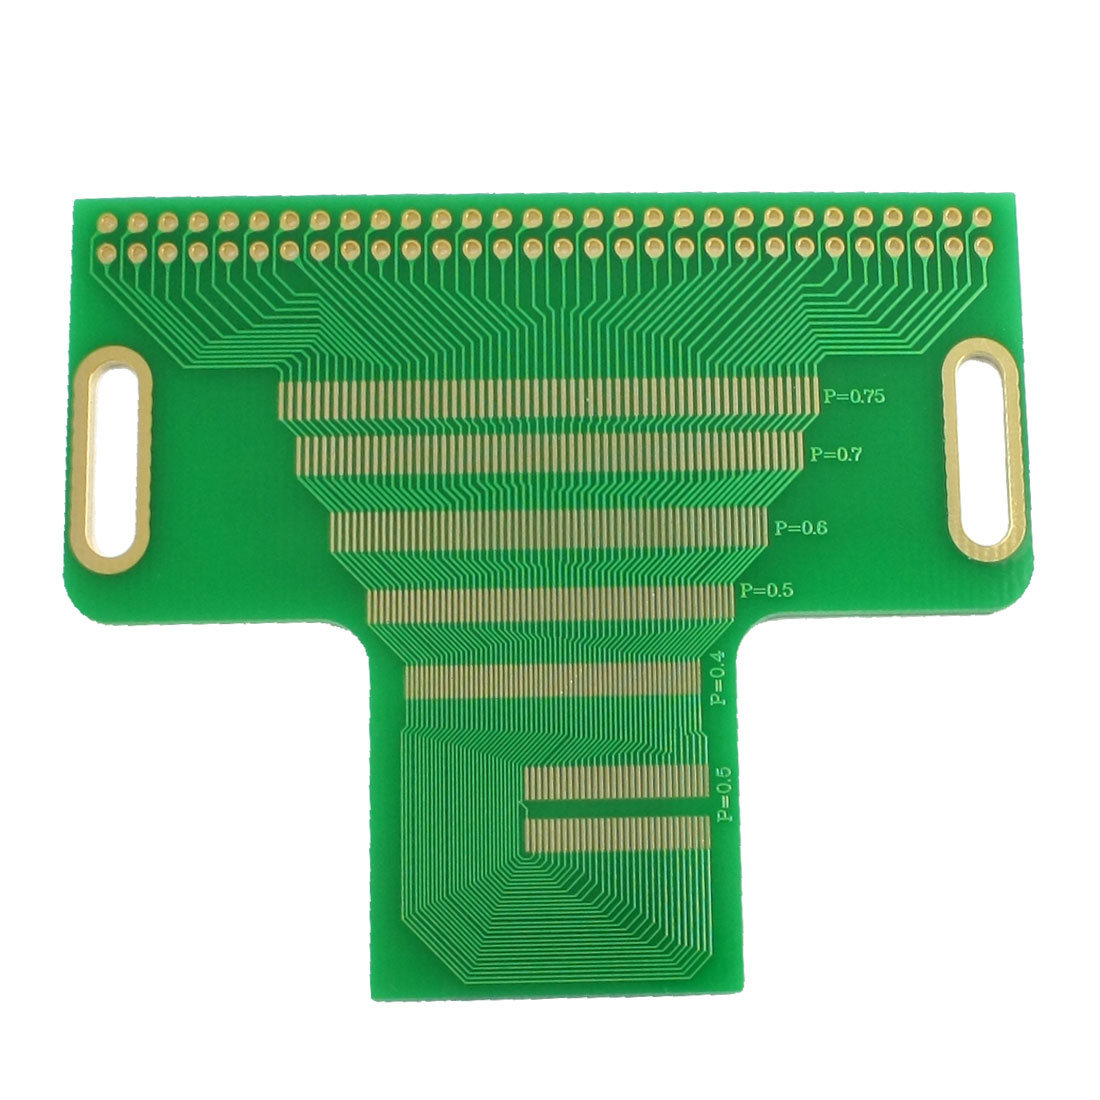 Prototyping Double Side PCB Board Stripboard 60P Green 80x65mm